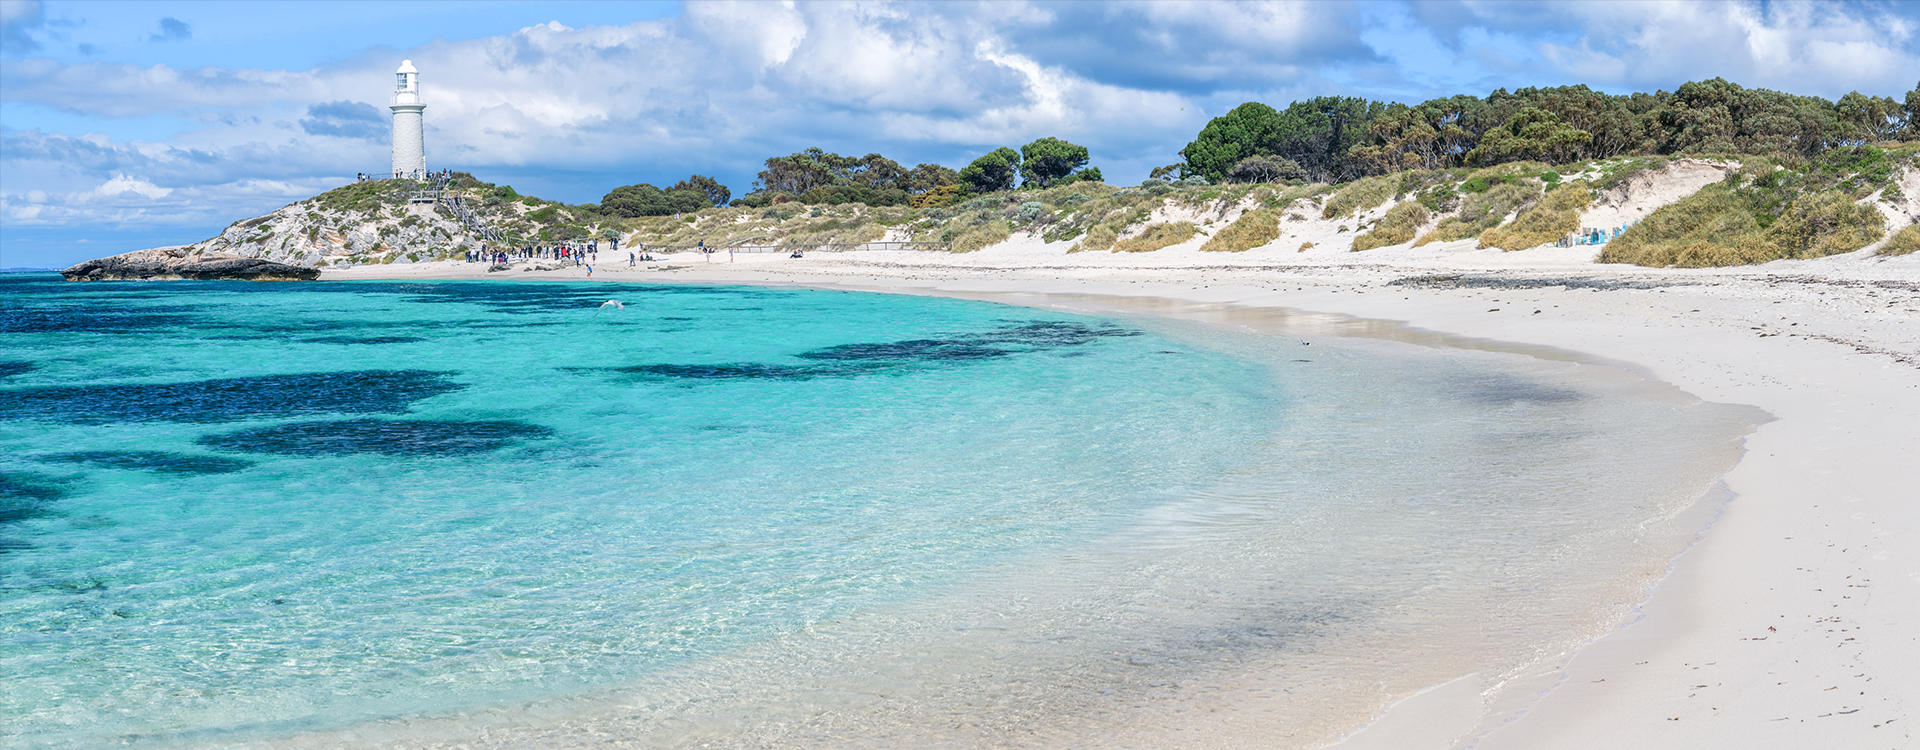 RG-Pensione_Rottnest-Insel